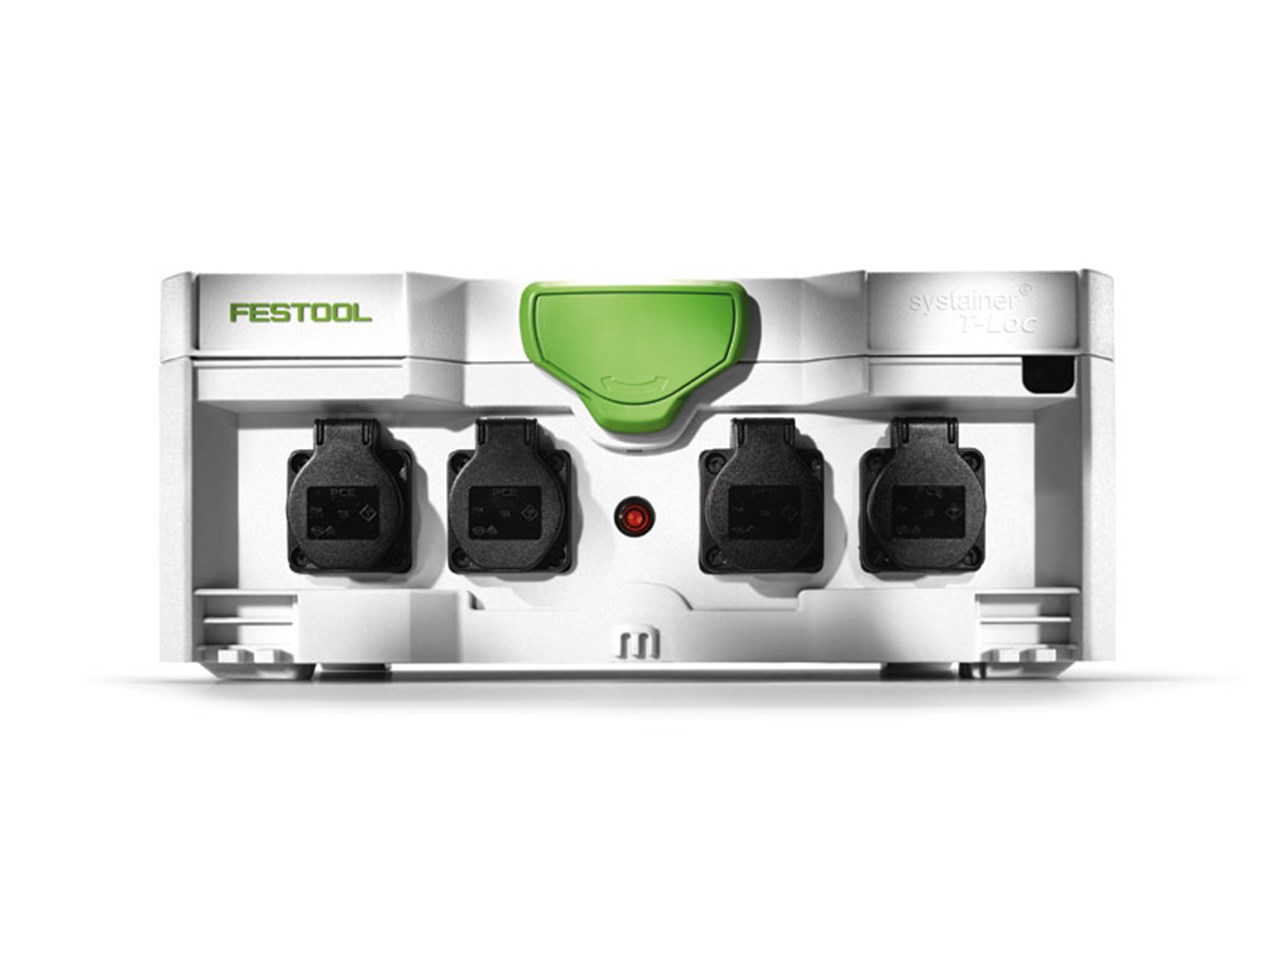 festool sys ph gb 230v 10m 4 way systainer powerhub. Black Bedroom Furniture Sets. Home Design Ideas